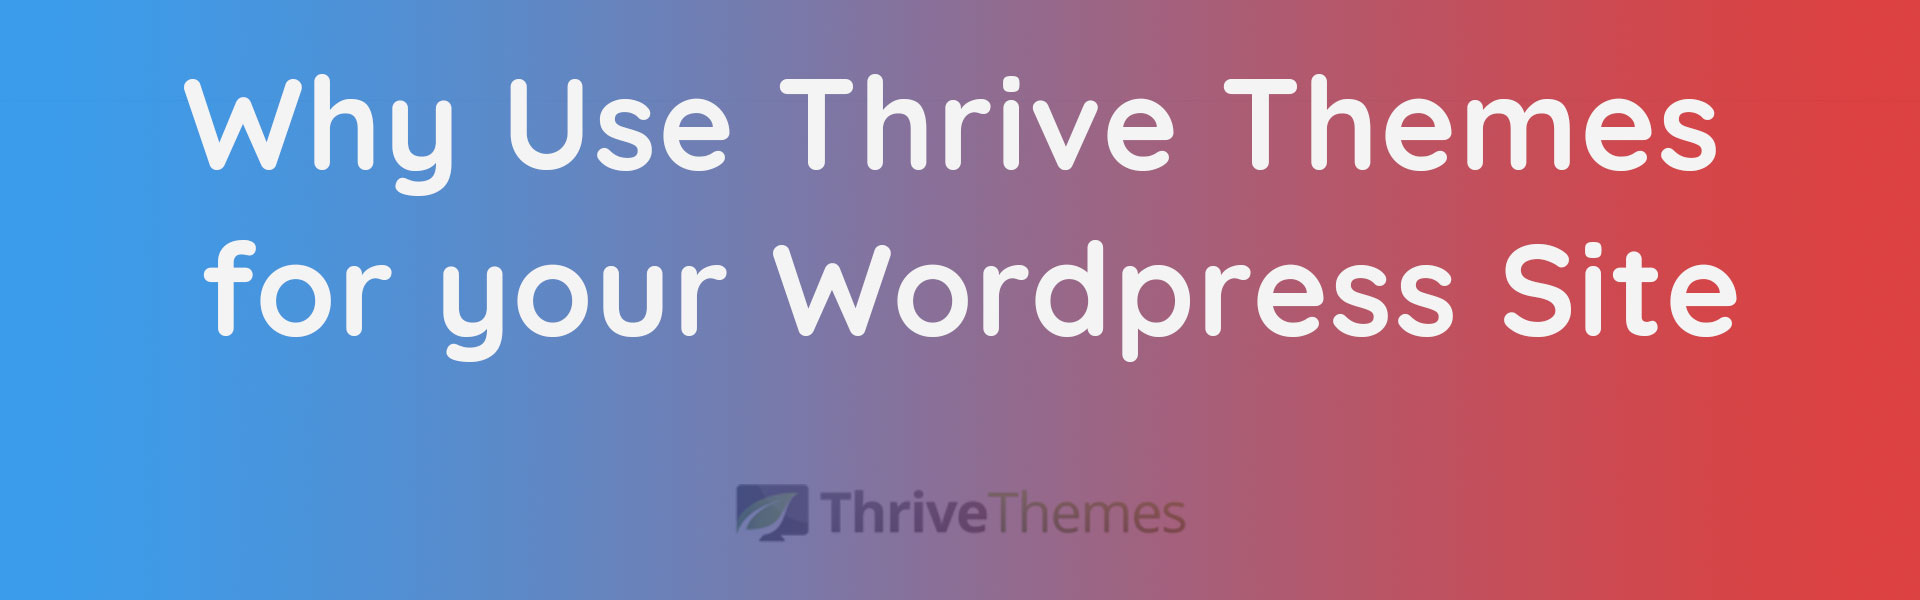 Warranty Register  Thrive Themes